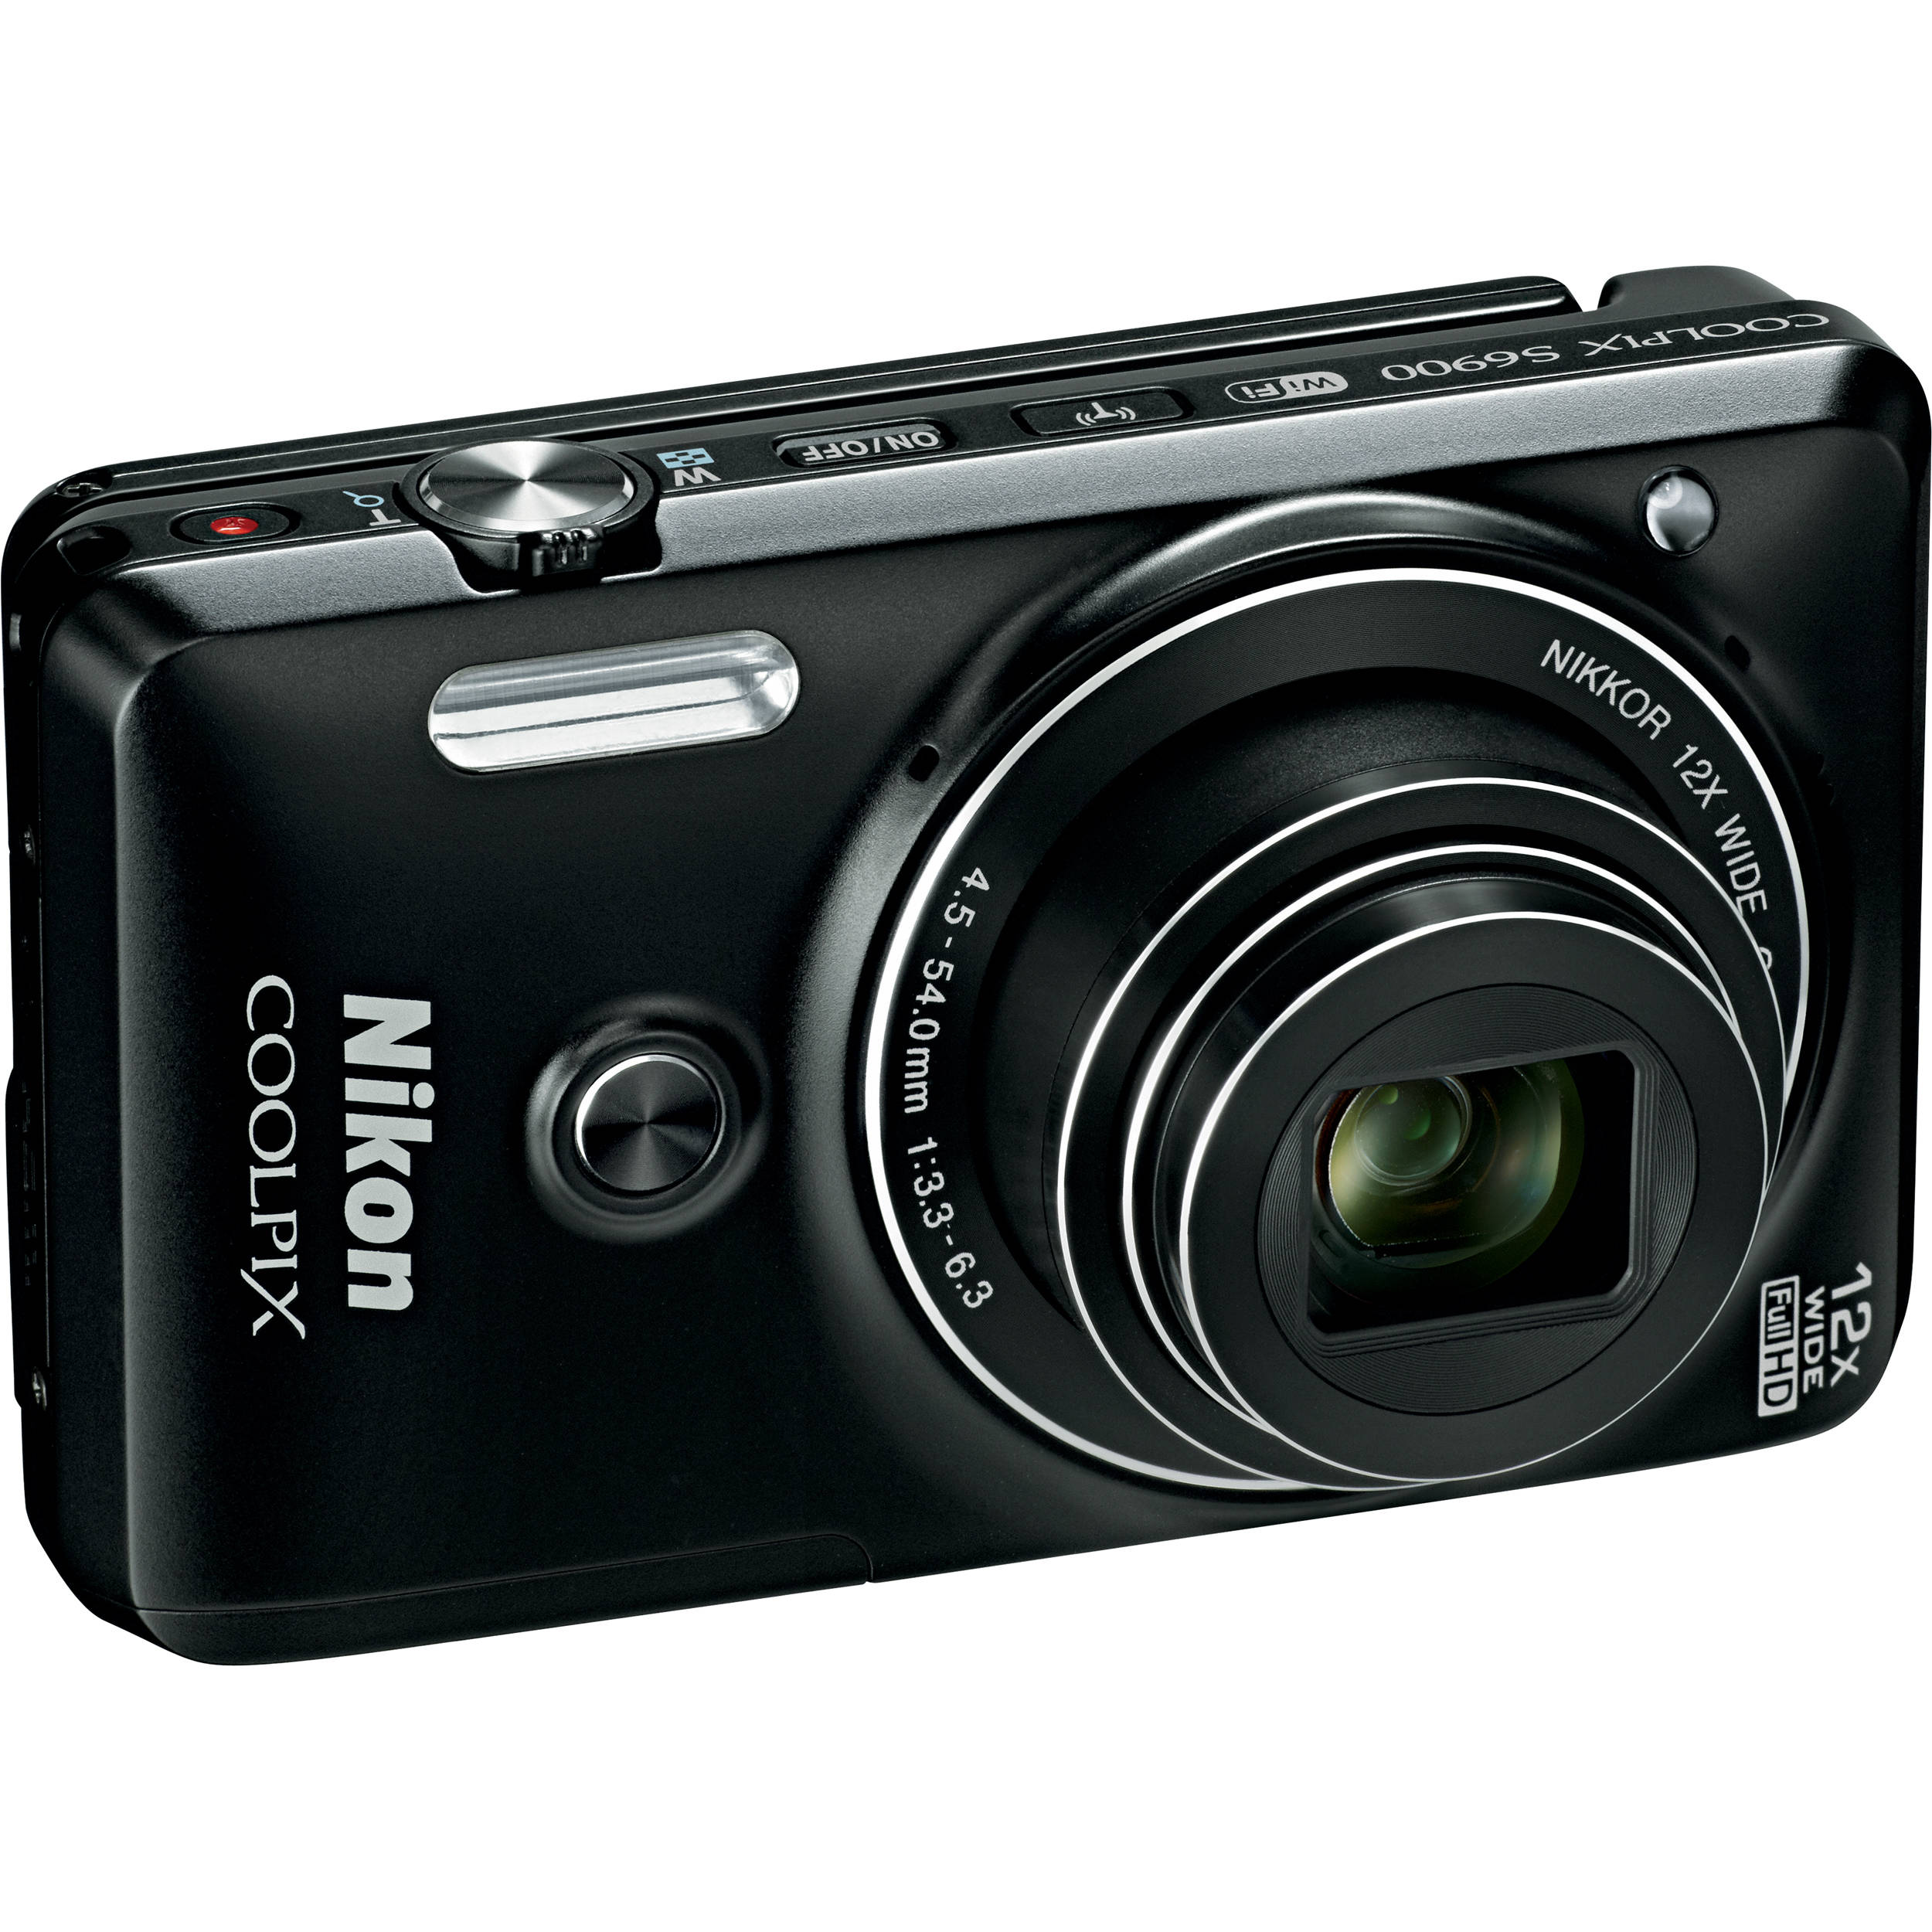 Nikon COOLPIX S6900 Camera Drivers for PC